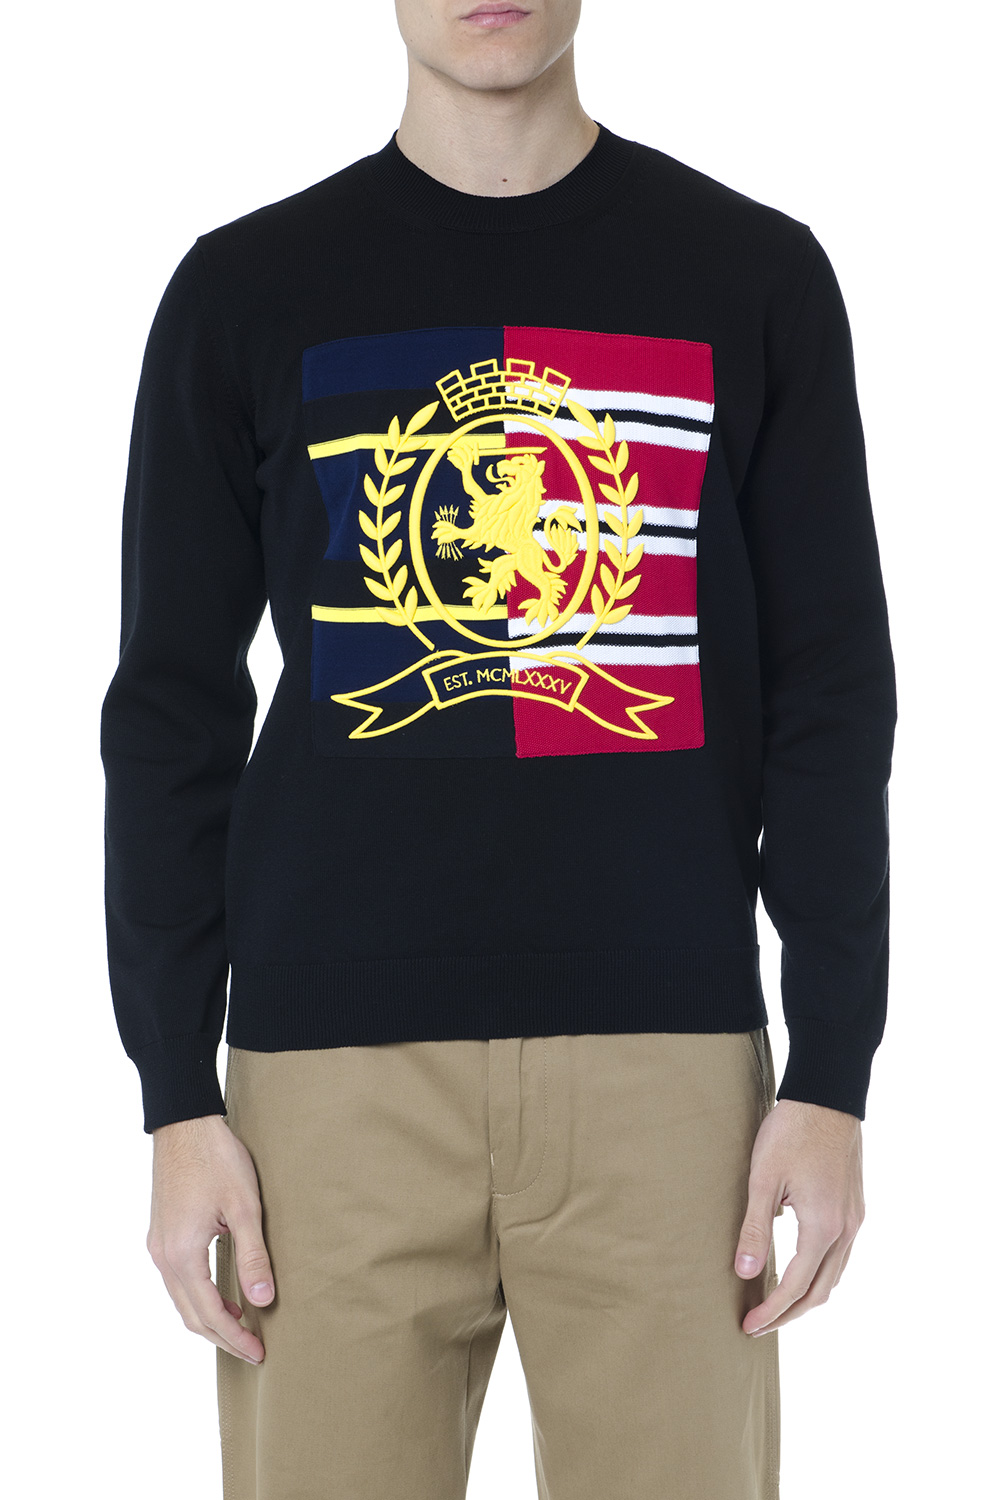 4102cc8f BLACK COTTON SWEATSHIRT WITH EMBROIDERED LOGO SS 2019 - TOMMY HILFIGER -  Boutique Galiano